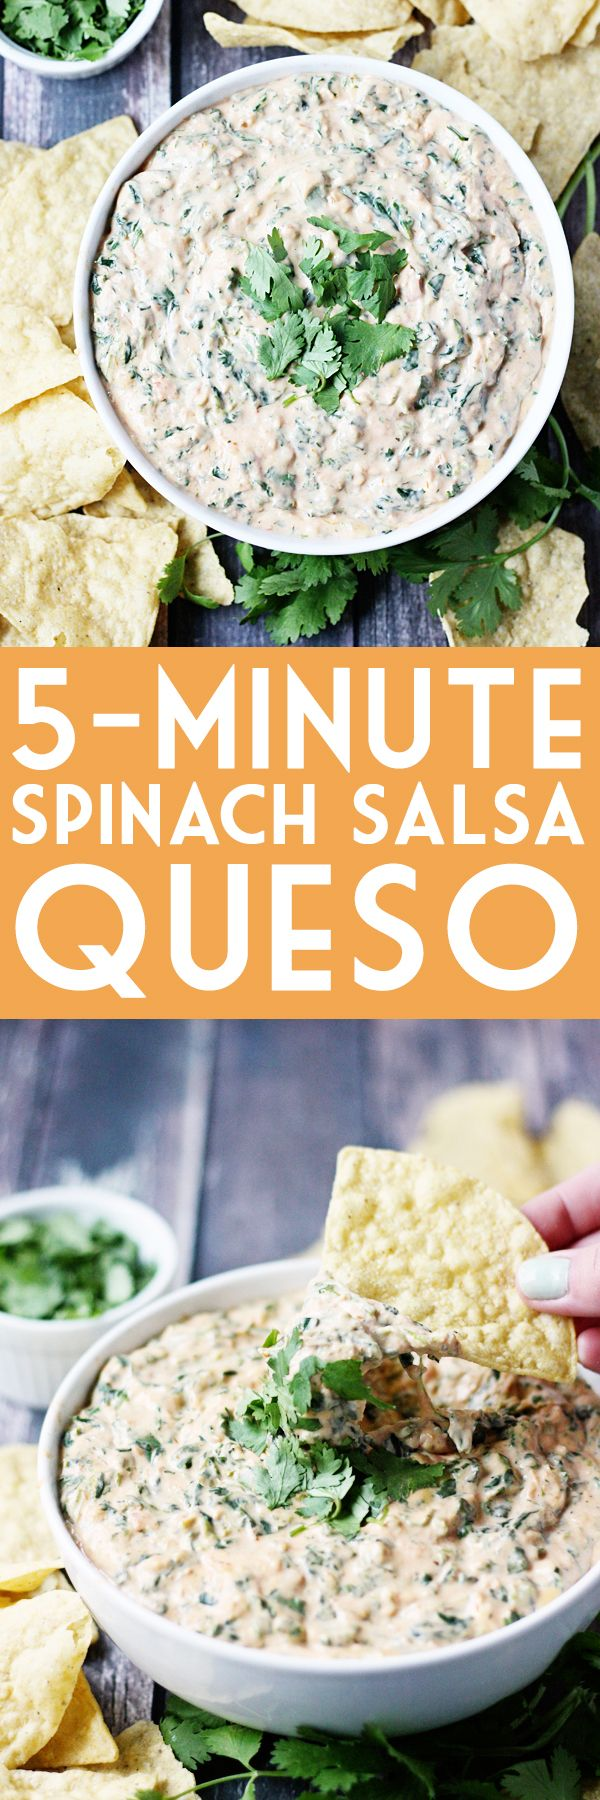 5-Minute Spinach Salsa Queso -- Need a last-minute Cinco de Mayo appetizer? Try this 5-minute spinach salsa queso dip. It is creamy, cheesy and totally addictive!   isthisreallymylife.com